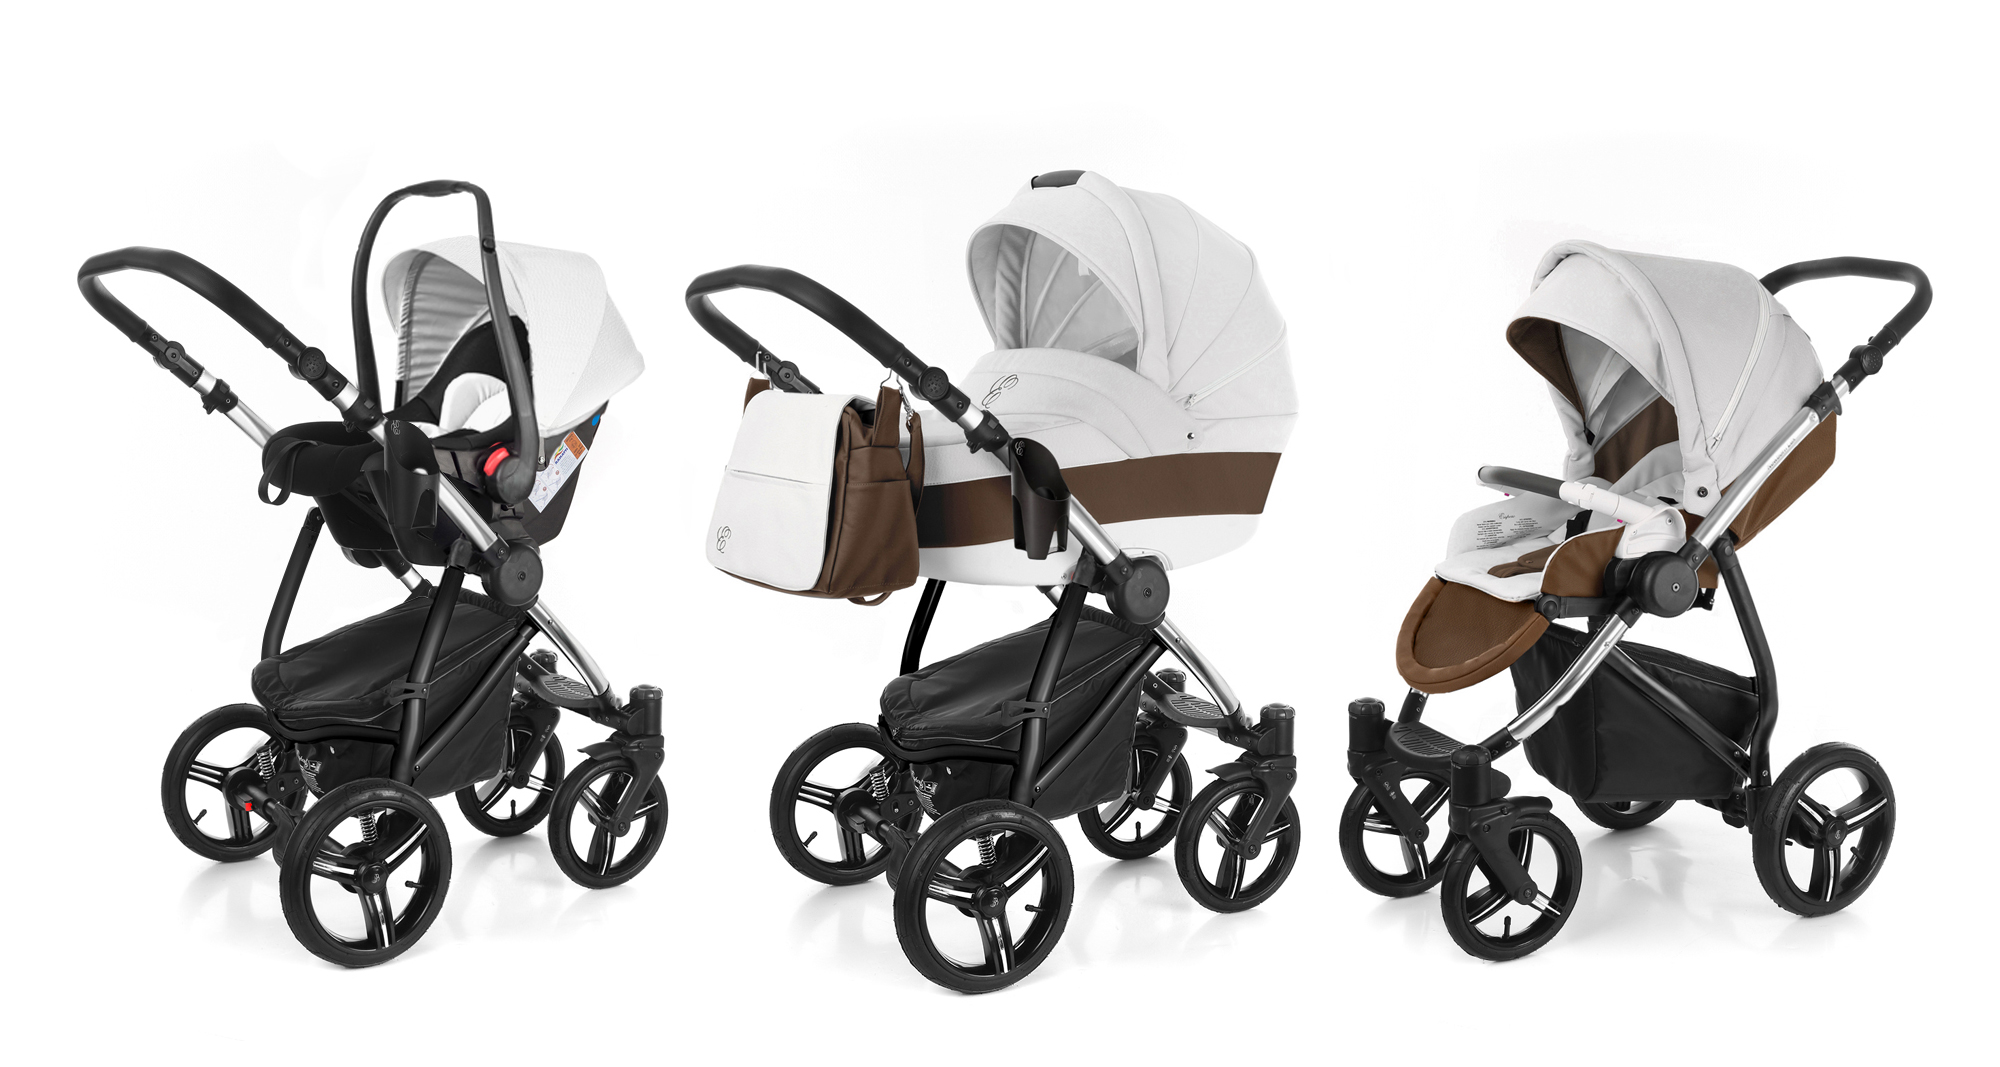 Коляска 3 в 1 Esspero Grand Newborn Lux (шасси Chrome) Canella leatherette